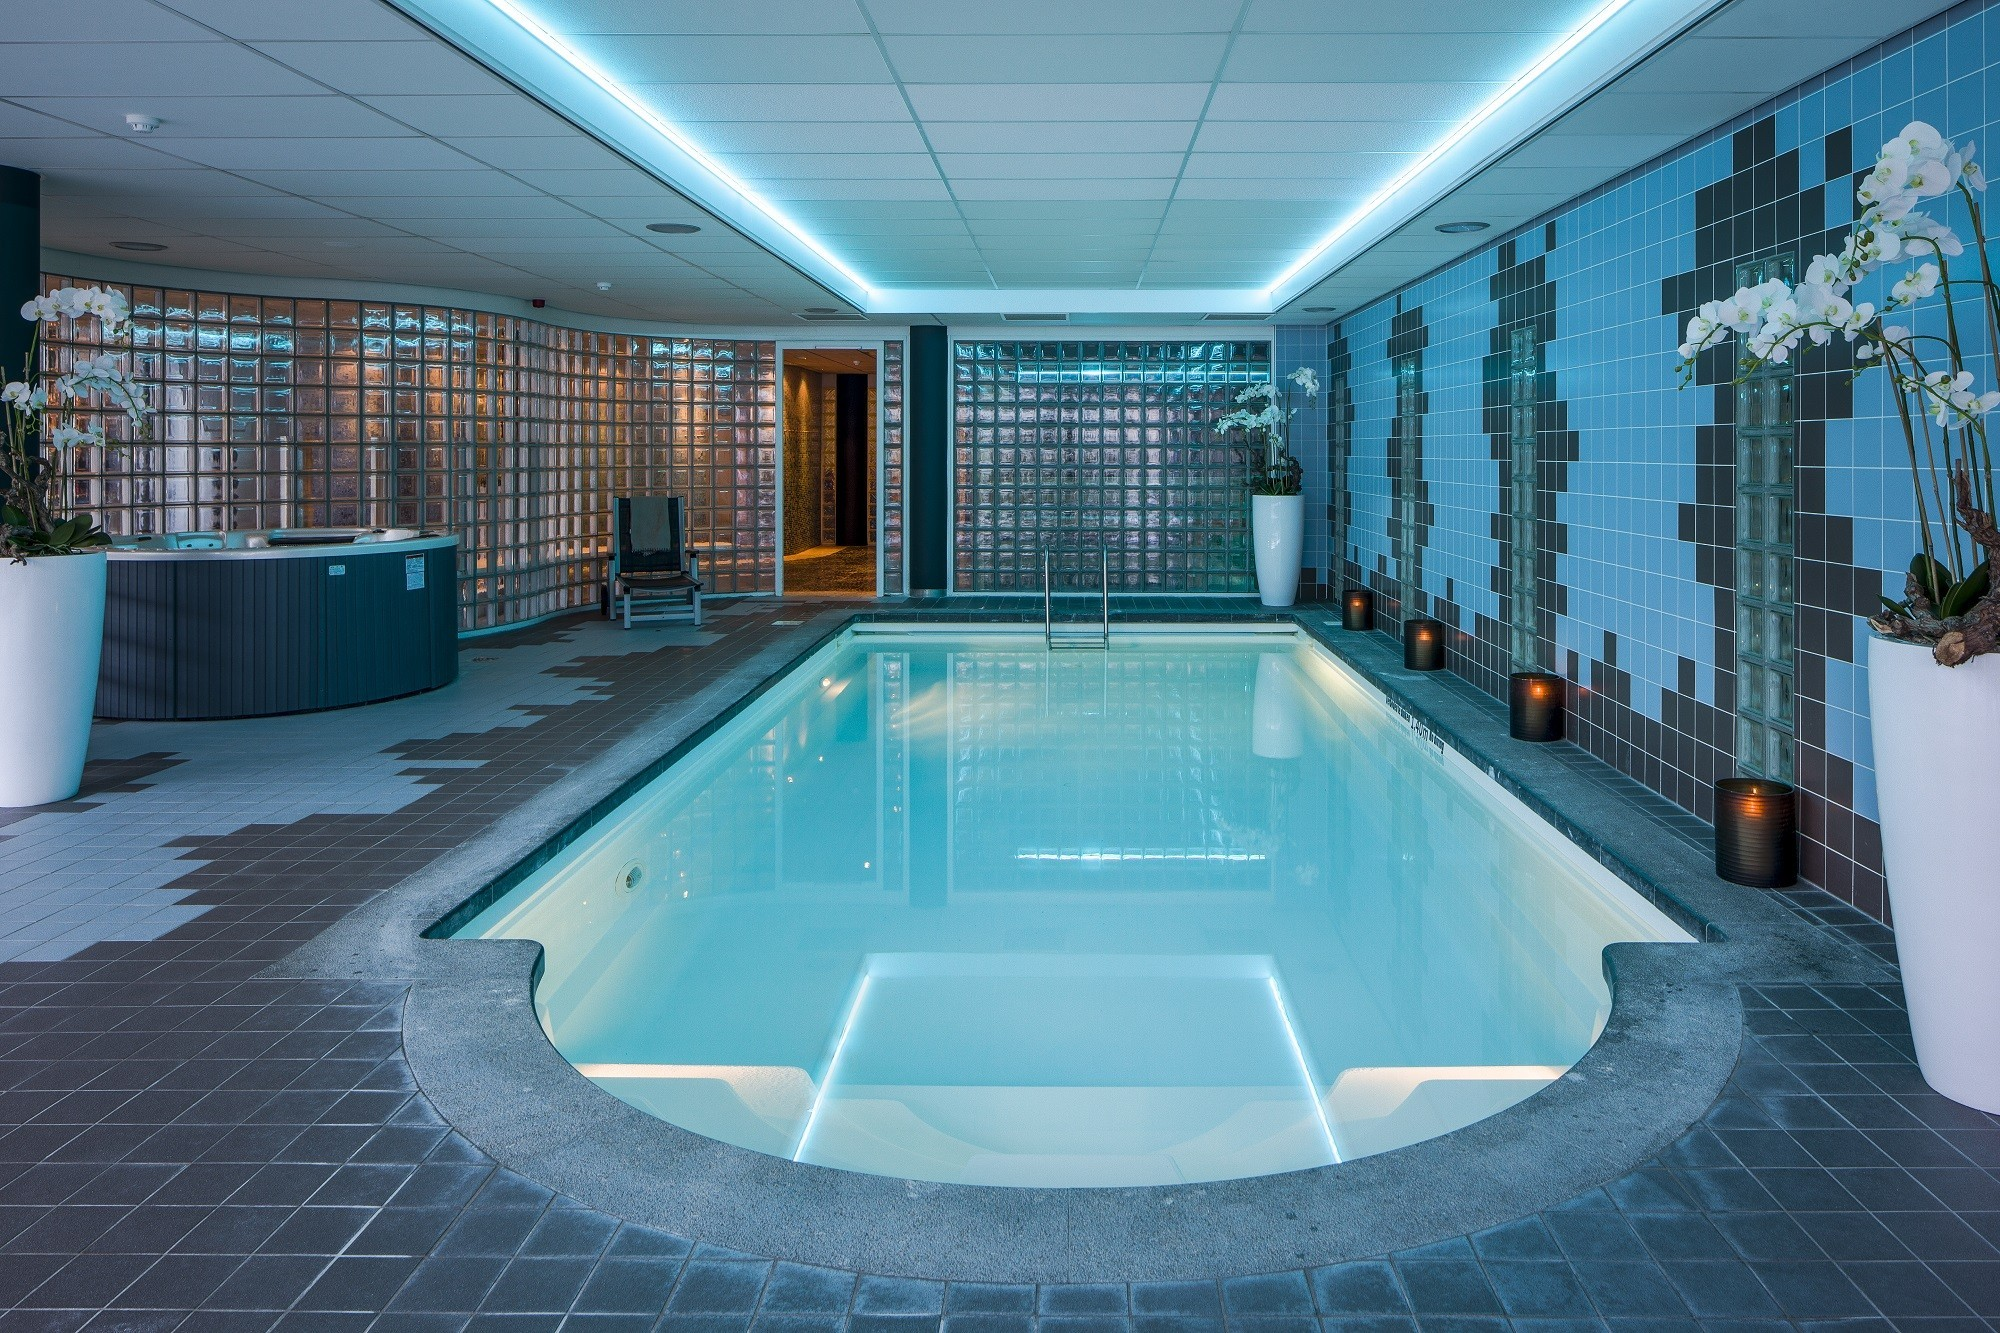 Korting Fletcher 4 Hotel In Brabant Incl Diner En Wellness